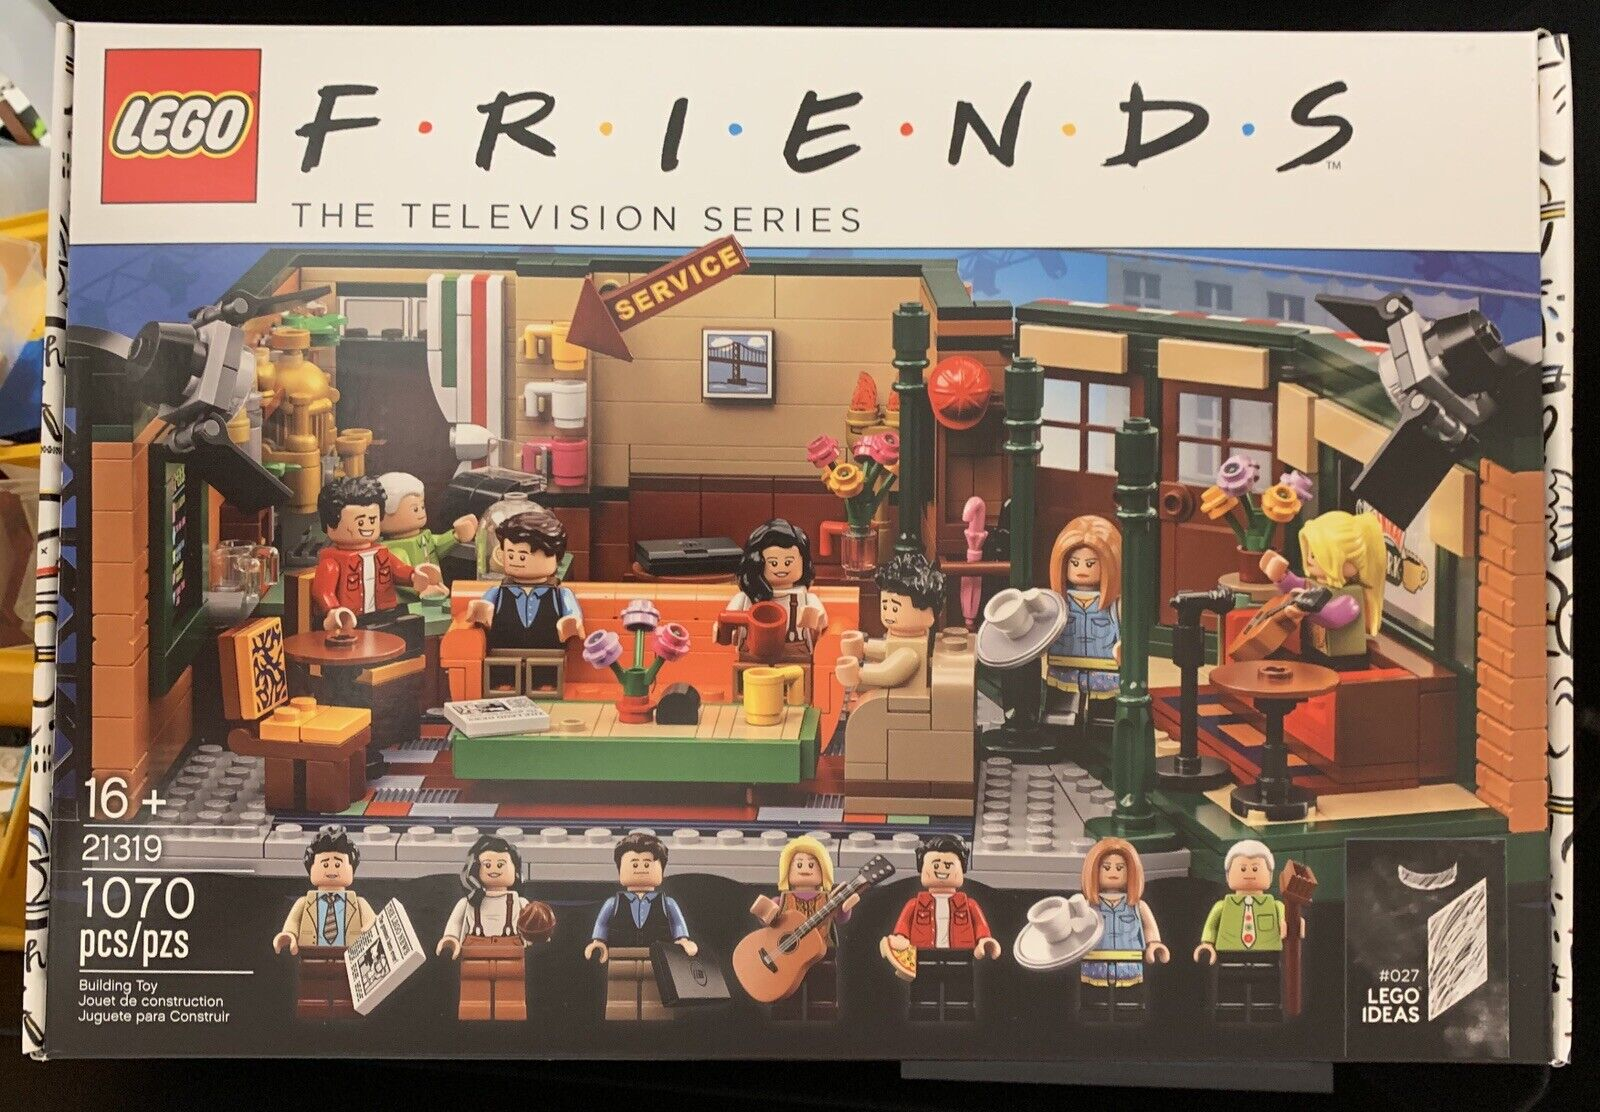 ON He LEGO Ideas 21319  FRIENDS TV series Central Perk set SHIP WITHIN 1 DAY  promozioni